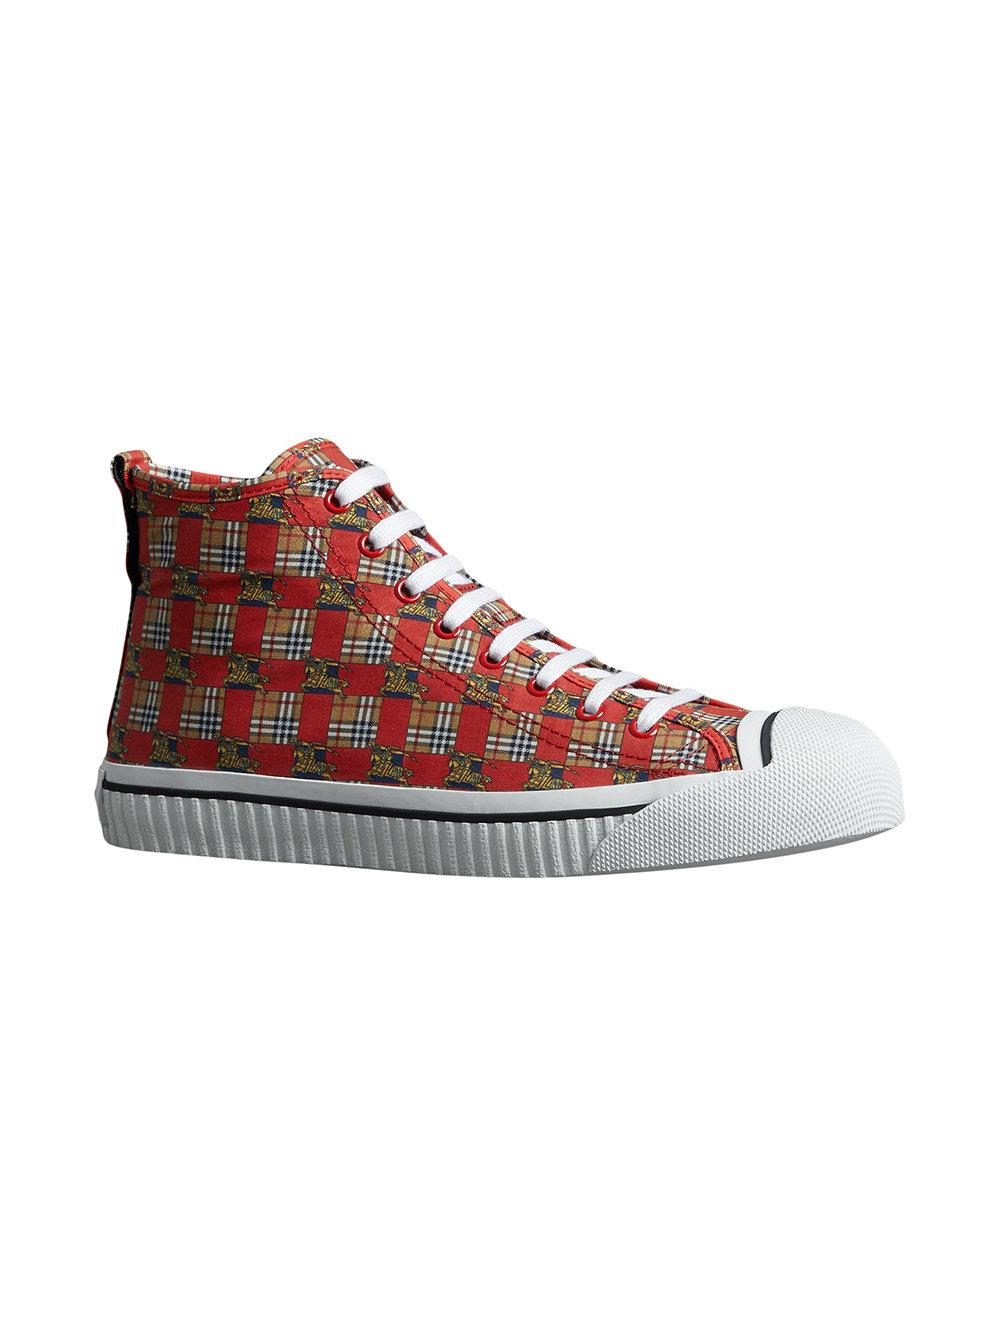 2b387fda8179 burberry-red-Tiled-Archive-Print-Cotton-High-top-Sneakers.jpeg